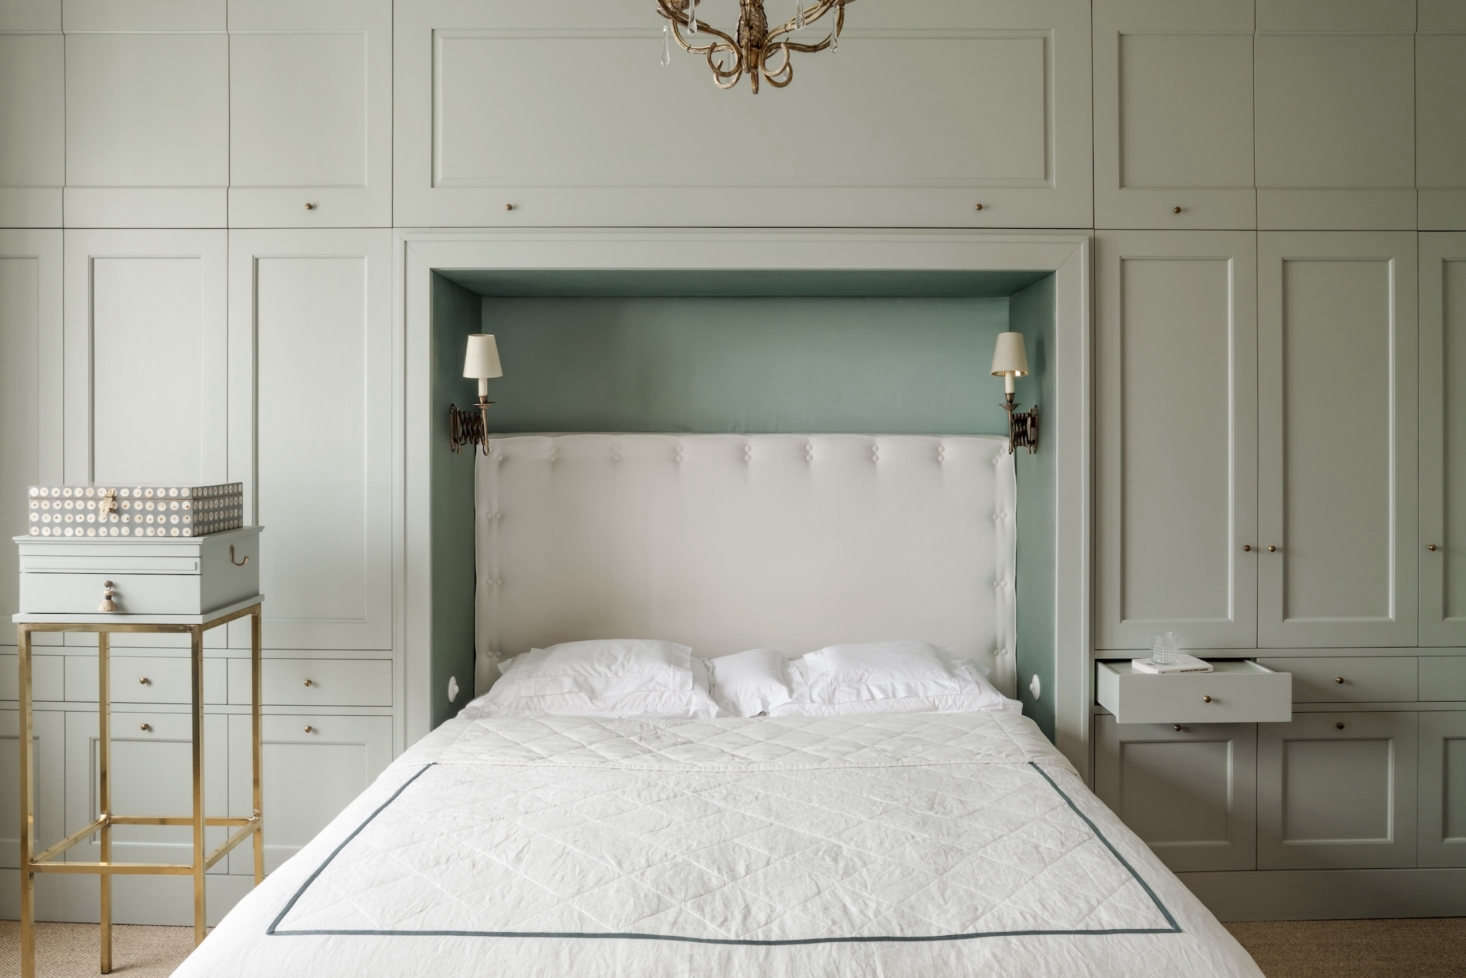 To add much-needed storage in the bedroom, Chrapka designed a wall of built-ins, painted in Farrow & Ball&#8